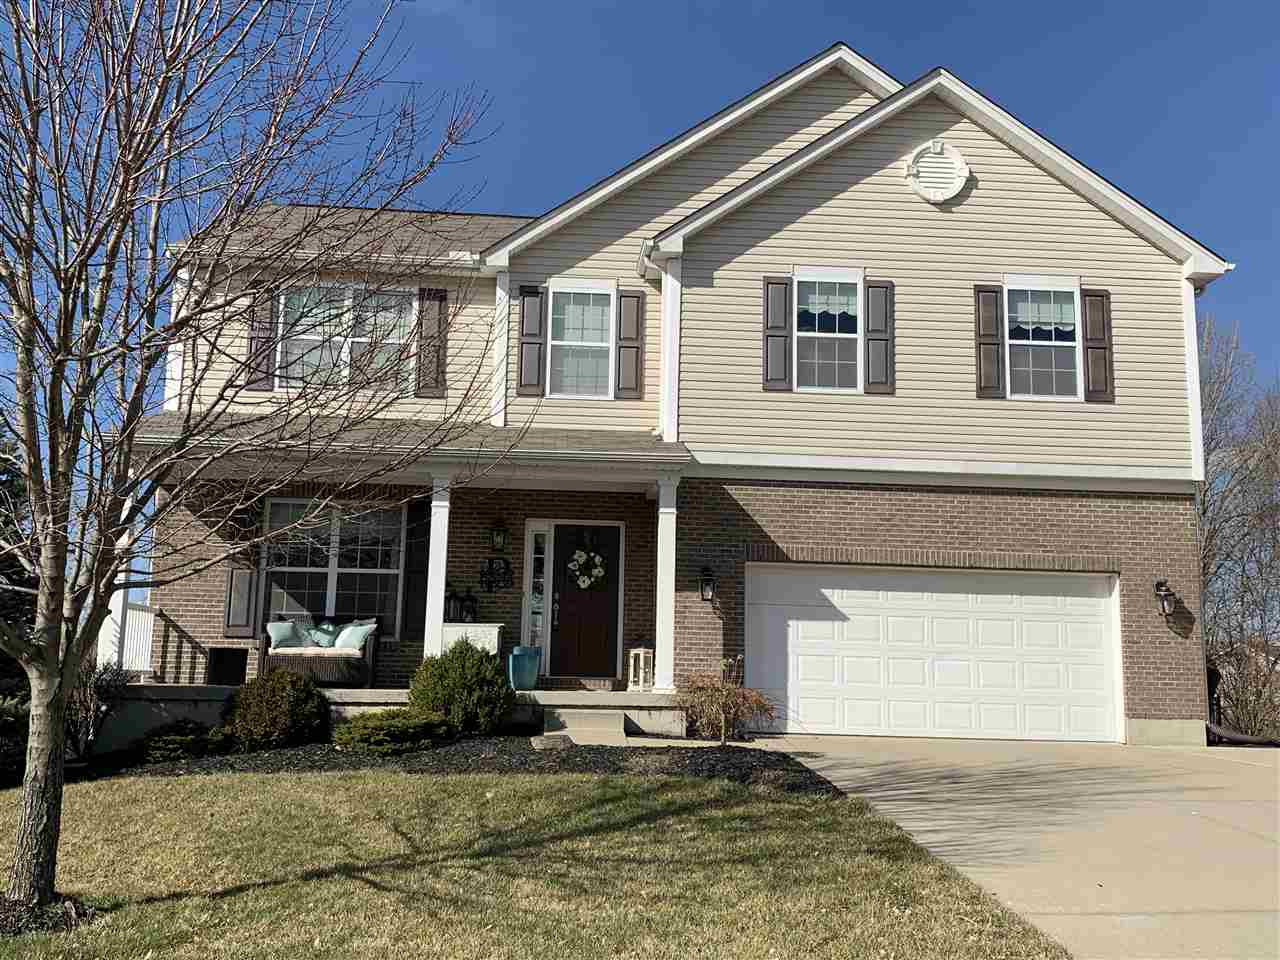 Photo 1 for 6363 Stonemill Dr Independence, KY 41051